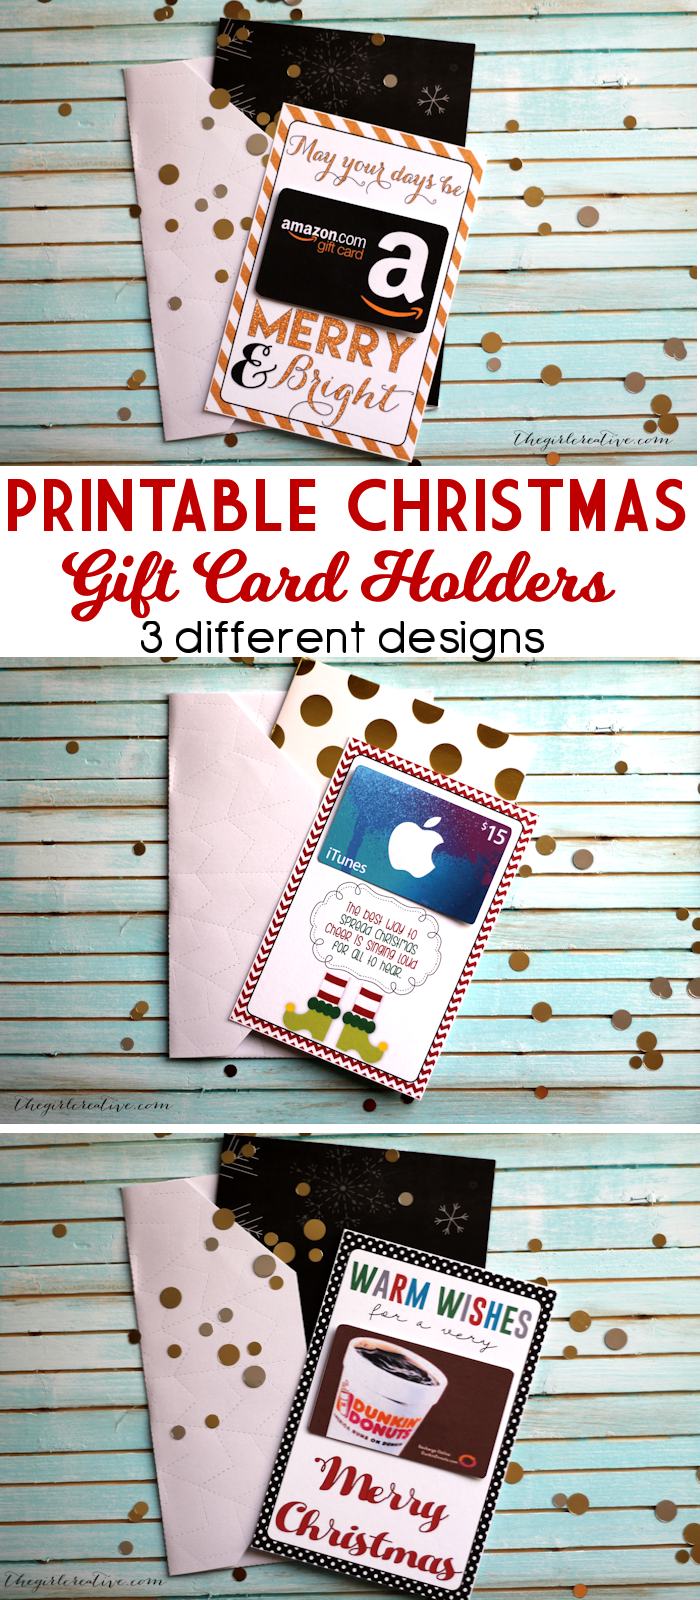 Printable Christmas Gift Card Holders - The Girl Creative